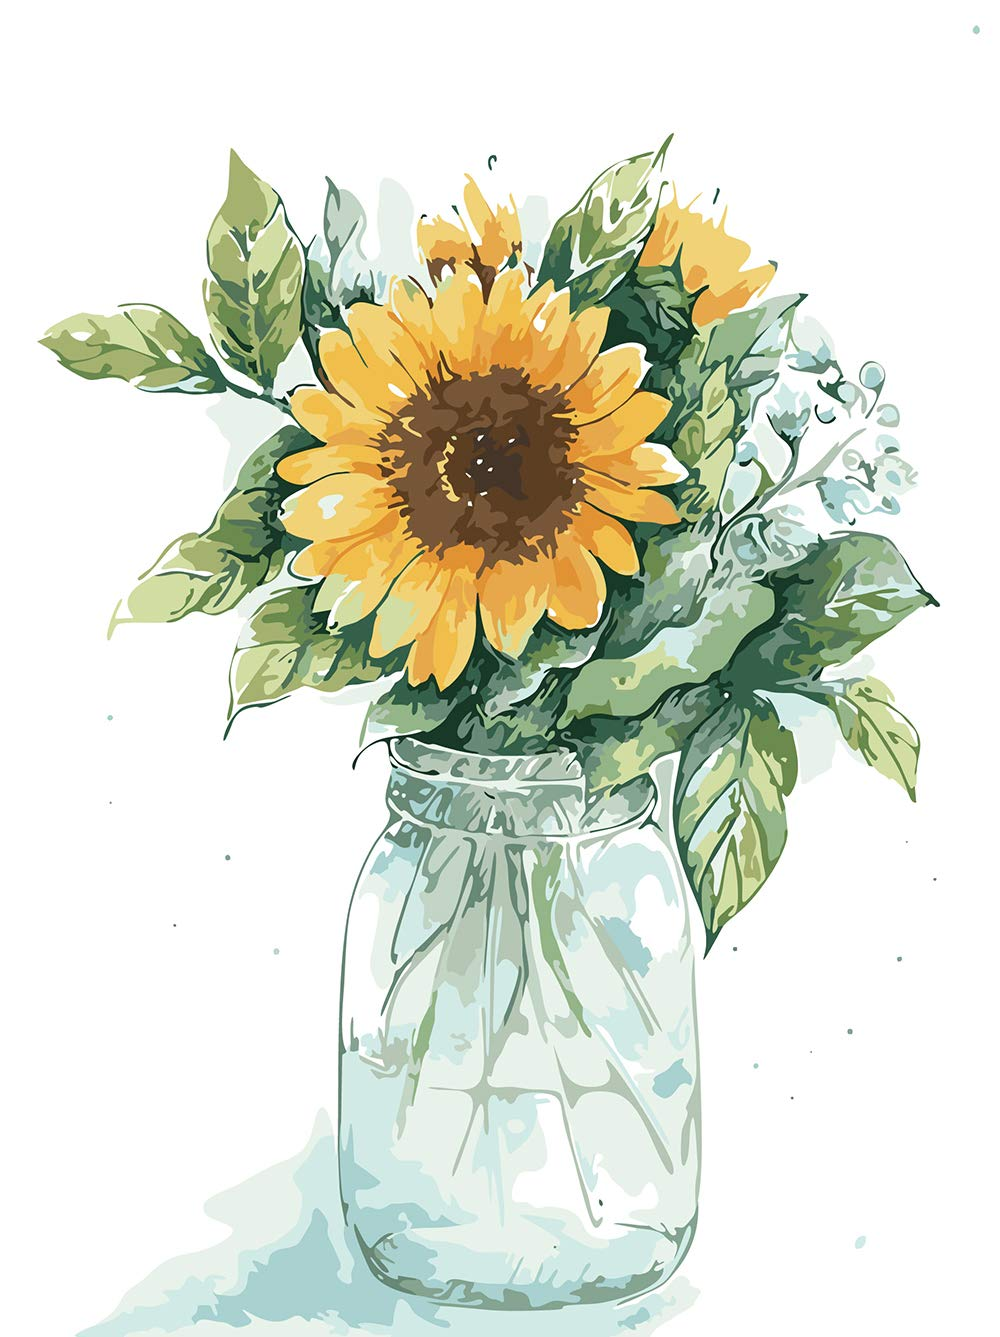 """Various Flower and Vase Series Paint by Numbers for Adults Kids Beginners Easy Acrylic on Canvas 16""""x20""""with Paints and Brushes, Sunflowers and Vase02(Without Frame)"""